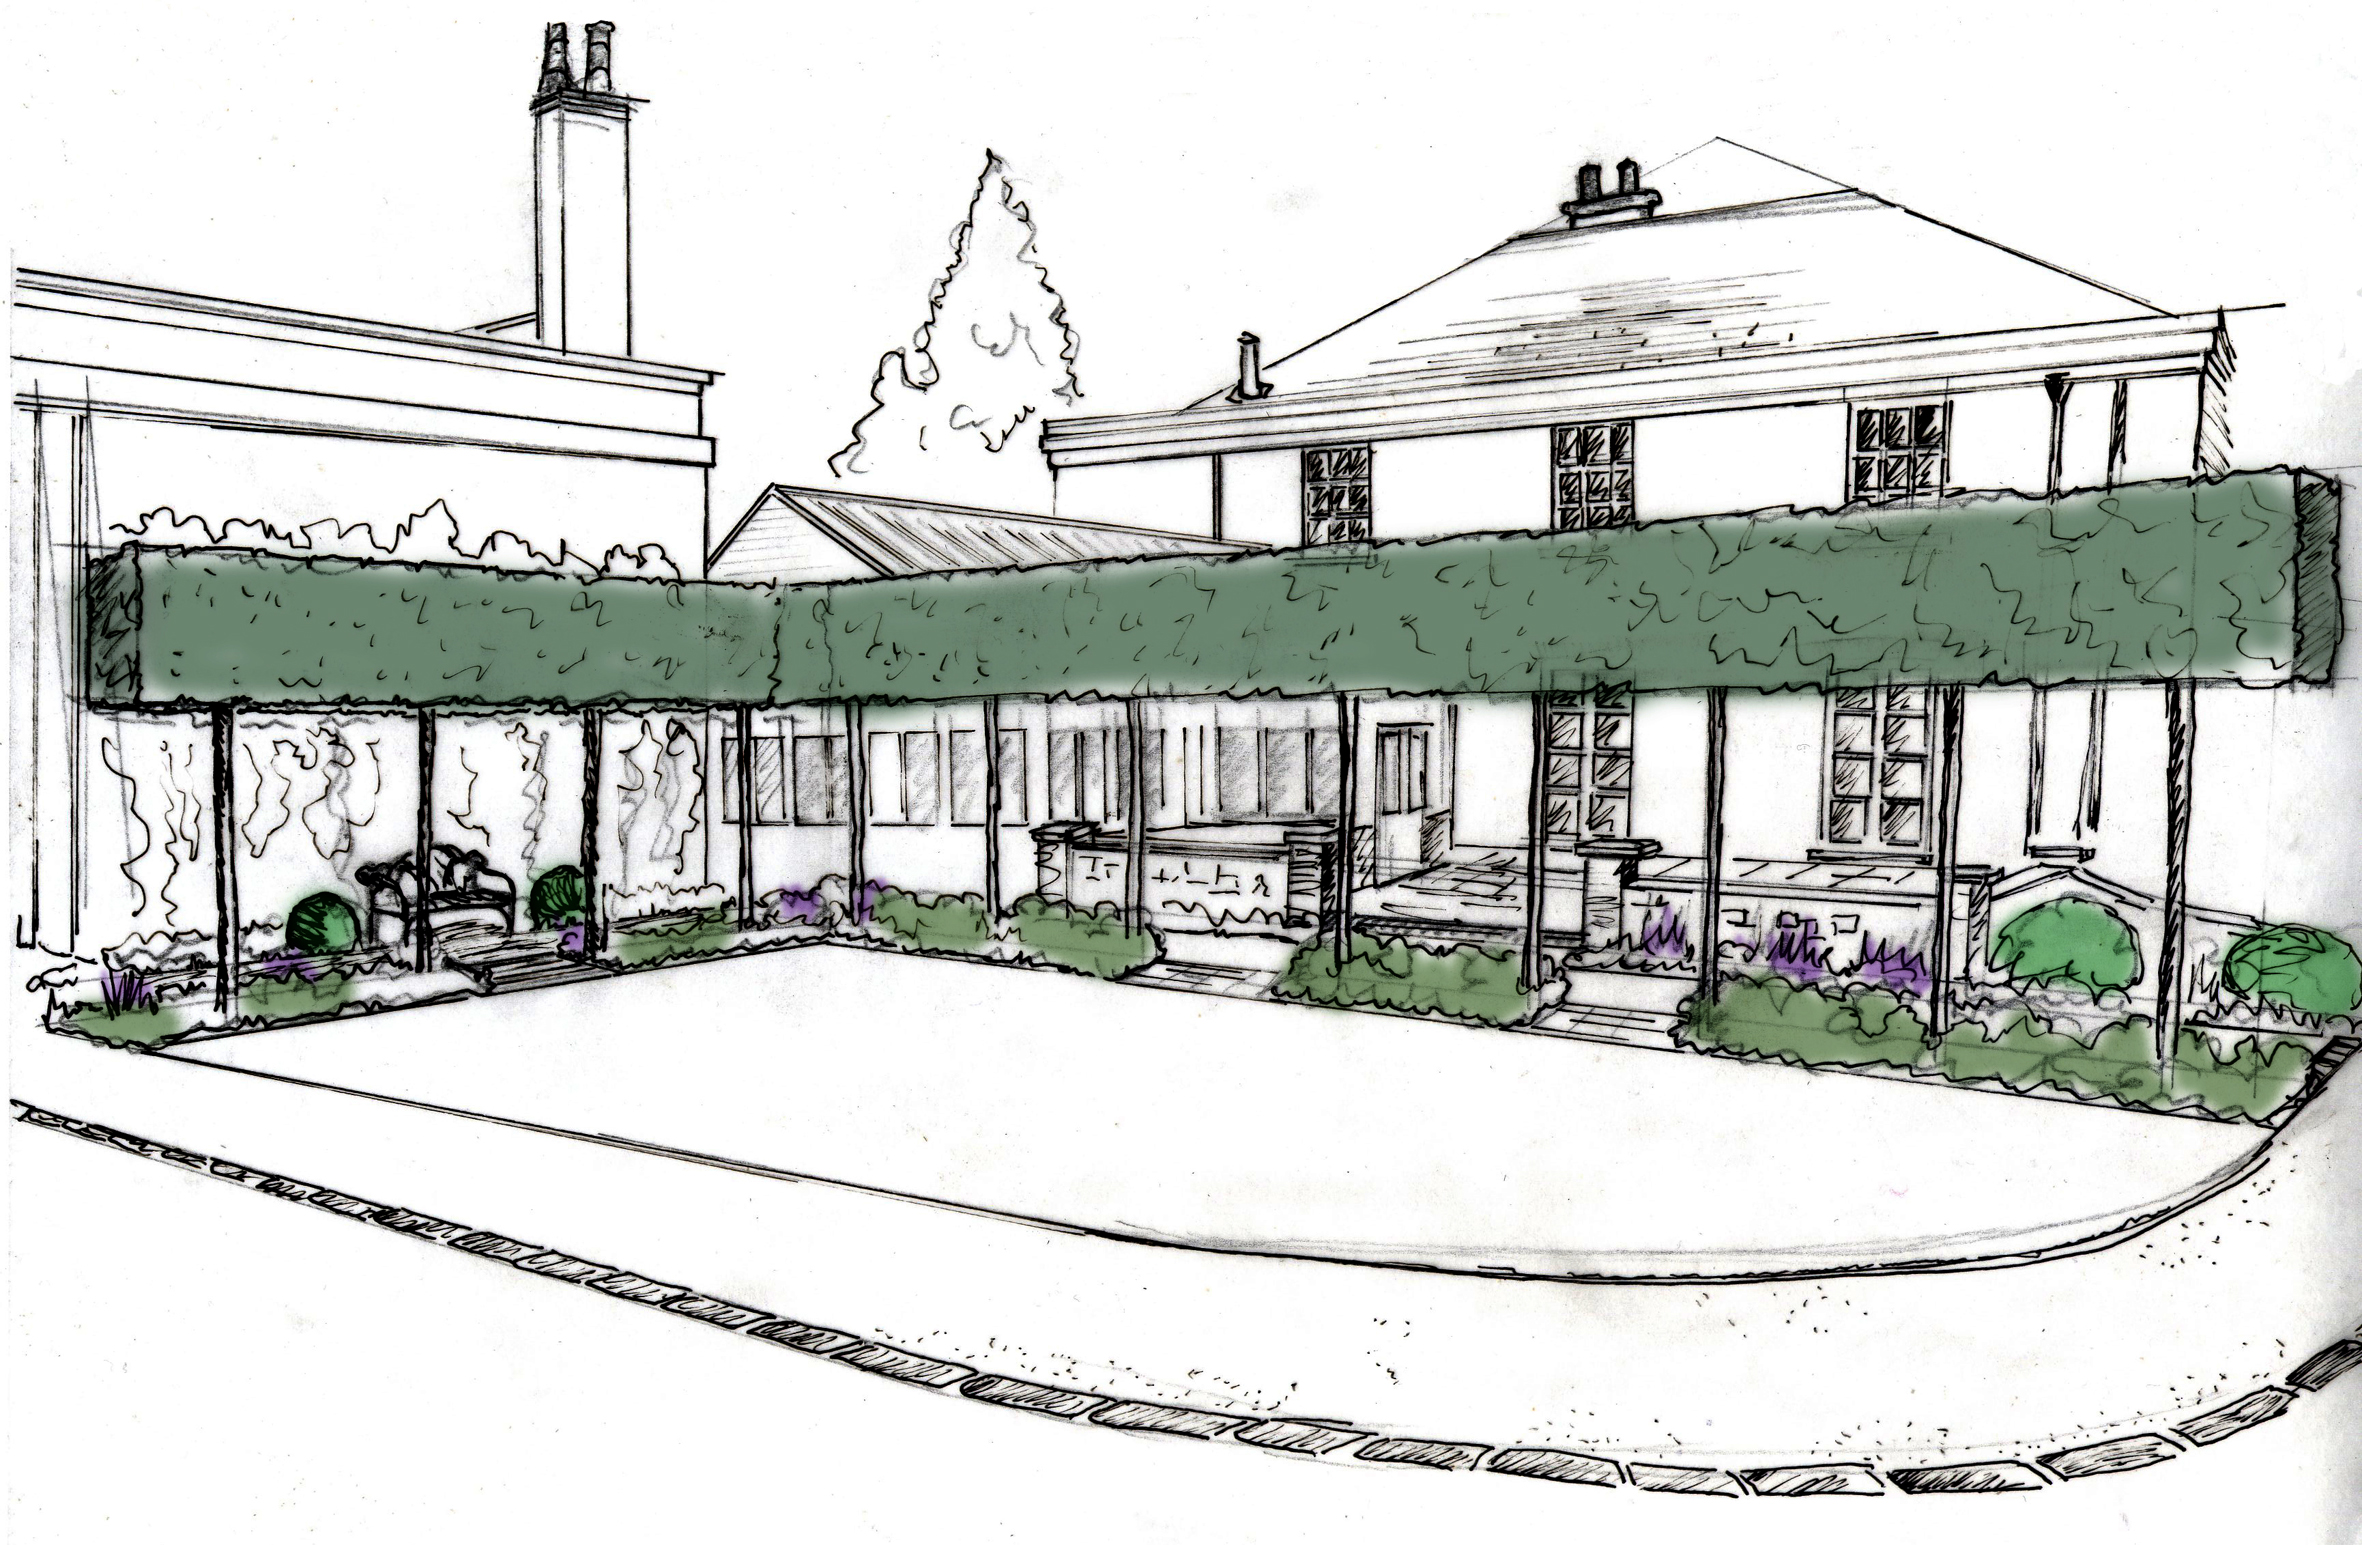 Concept Drawing for the Brasserie Garden, Whitworth Hall Hotel.